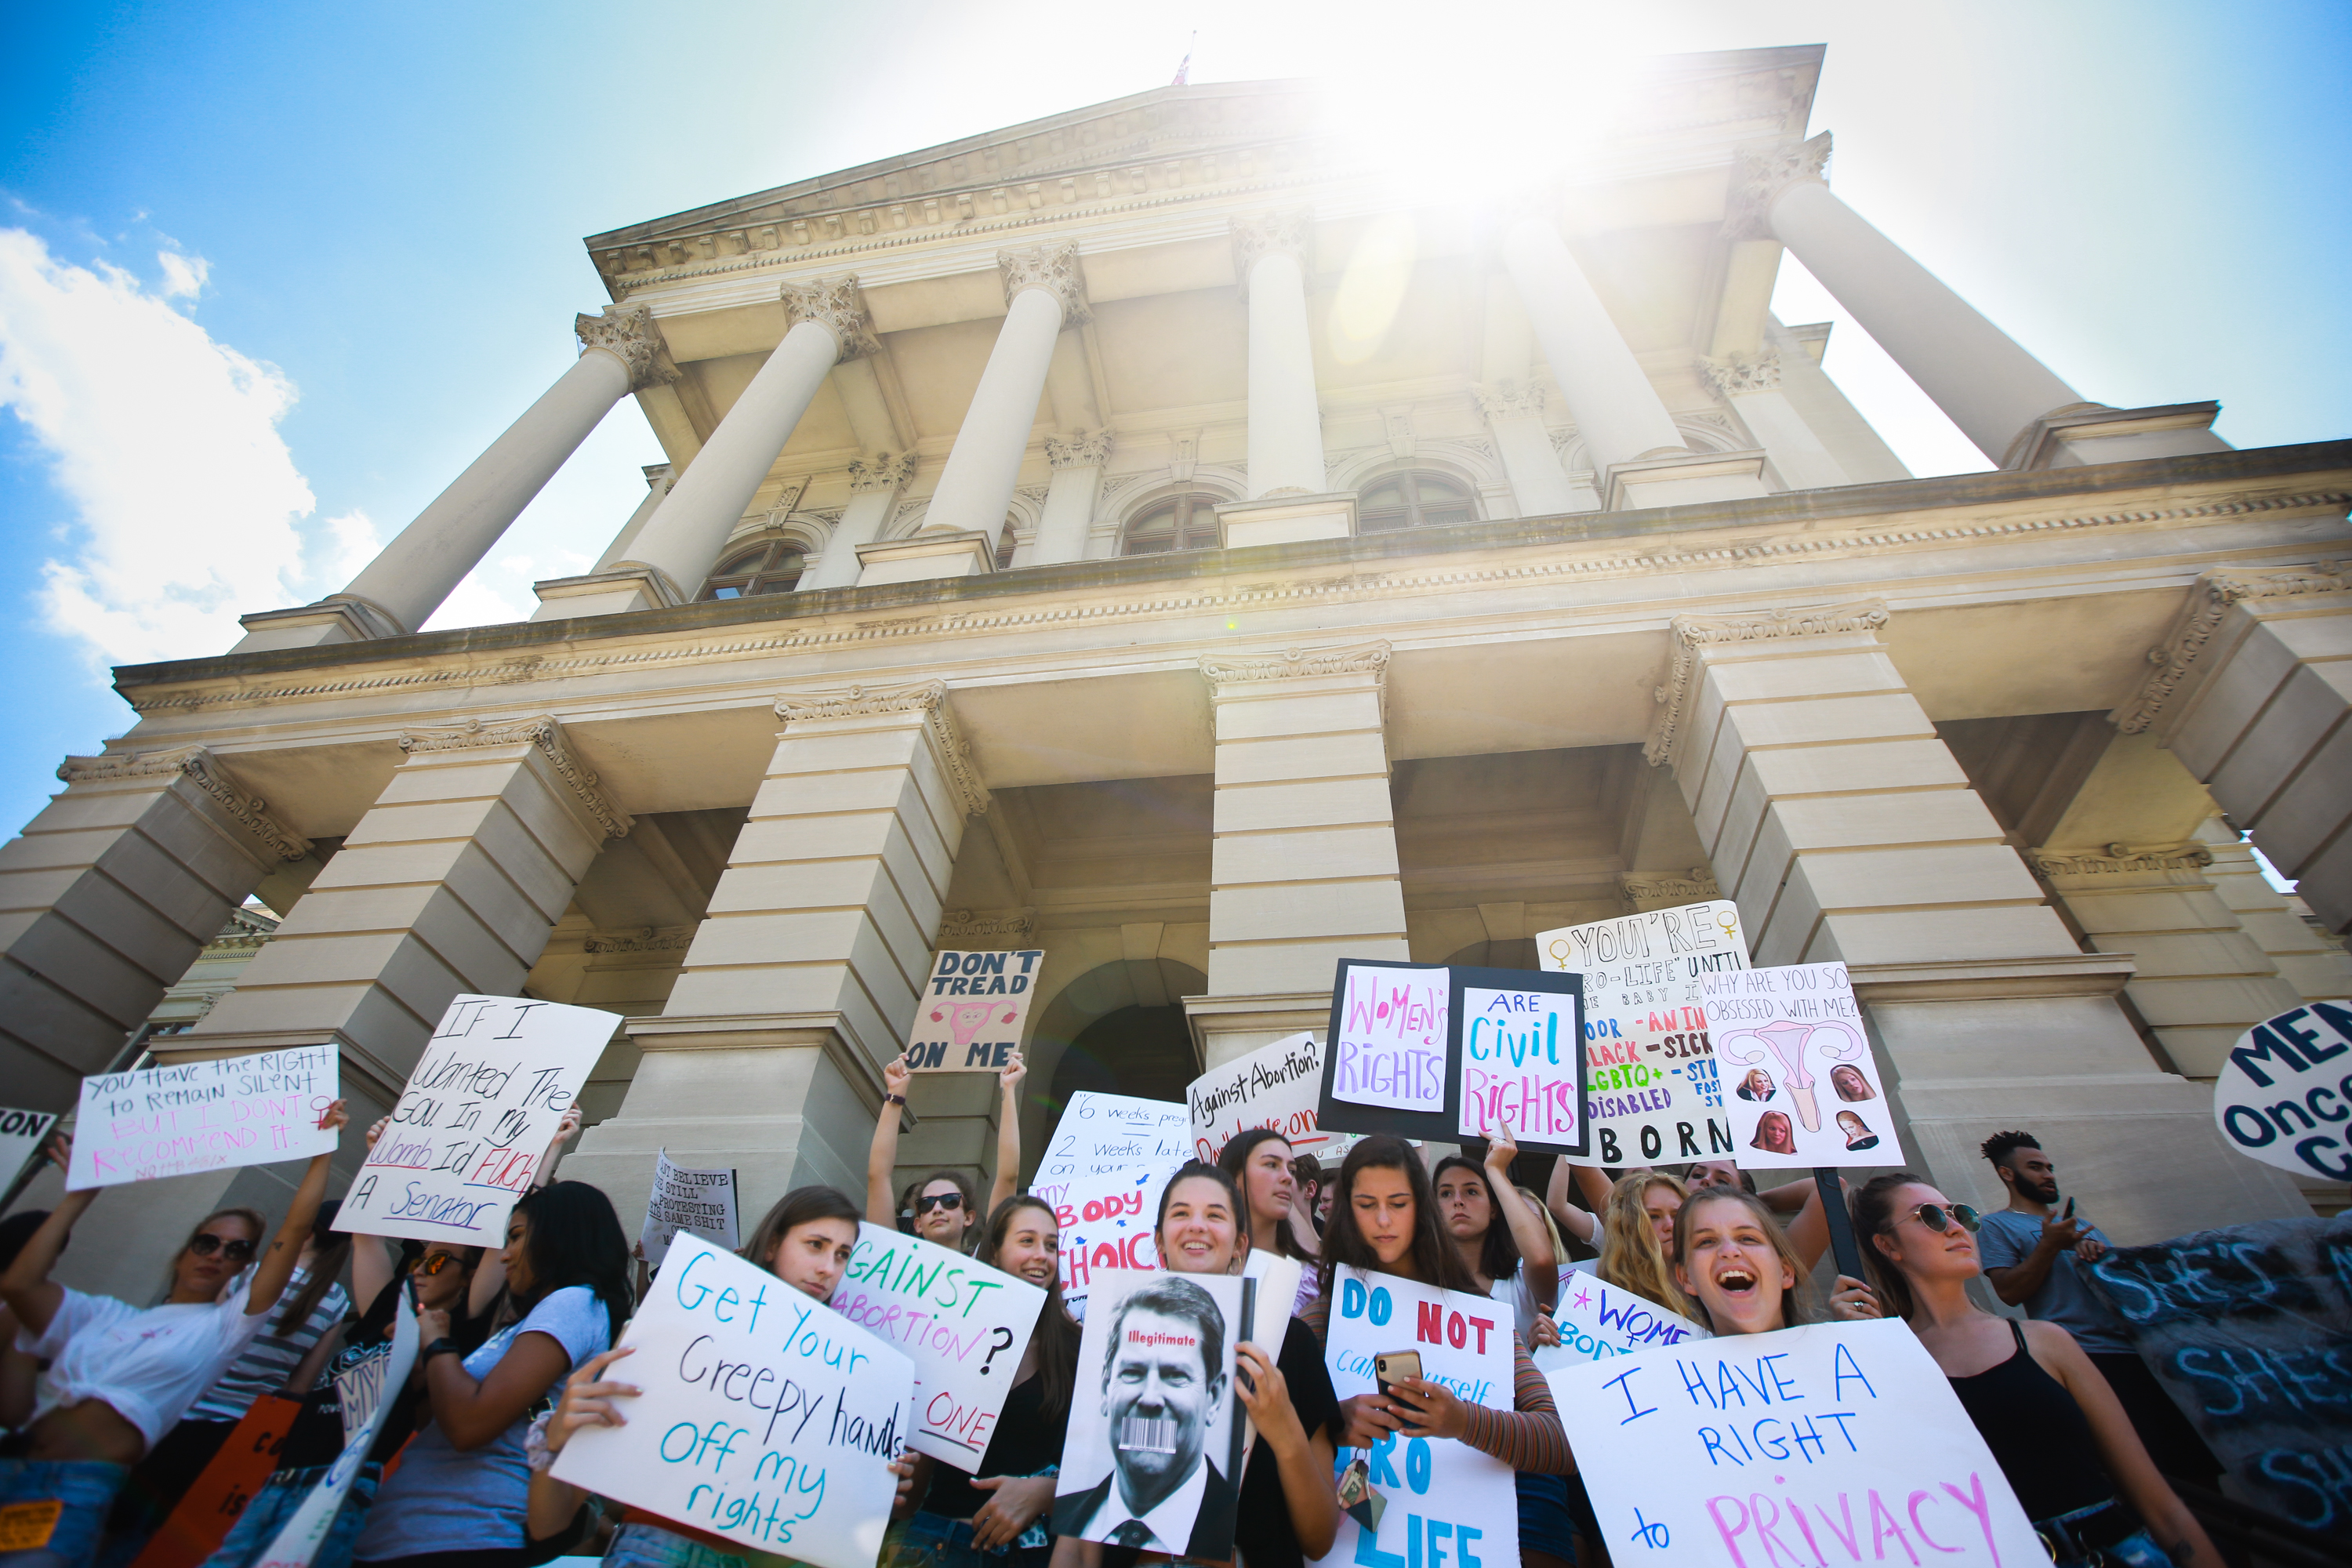 """ATLANTA, GA - MAY 21: Young women from Paideia High School hold signs during a protest against recently passed abortion ban bills at the Georgia State Capitol building, on May 21, 2019 in Atlanta, Georgia. The Georgia """"heartbeat"""" bill would ban abortion when a fetal heartbeat is detected. The Alabama abortion law, signed by Gov. Kay Ivey last week, includes no exceptions for cases of rape and incest, outlawing all abortions except when necessary to prevent serious health problems for the woman. Though women are exempt from criminal and civil liability, the new law punishes doctors for performing an abortion, making the procedure a Class A felony punishable by up to 99 years in prison (Photo by Elijah Nouvelage/Getty Images)"""